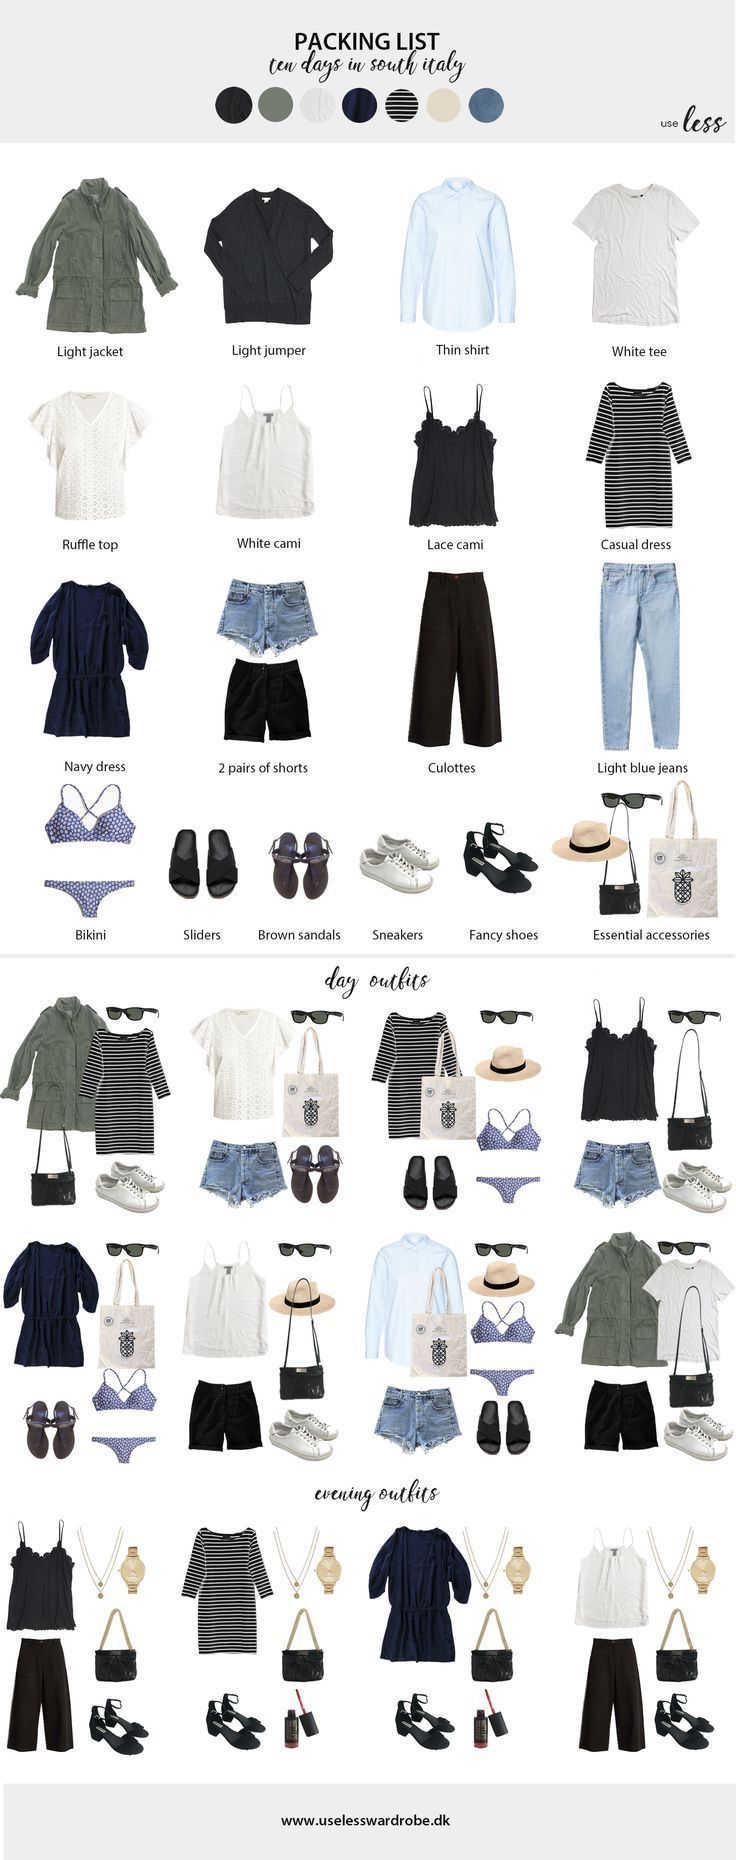 Packing light for a ten day summer trip in South Italy - july 2018